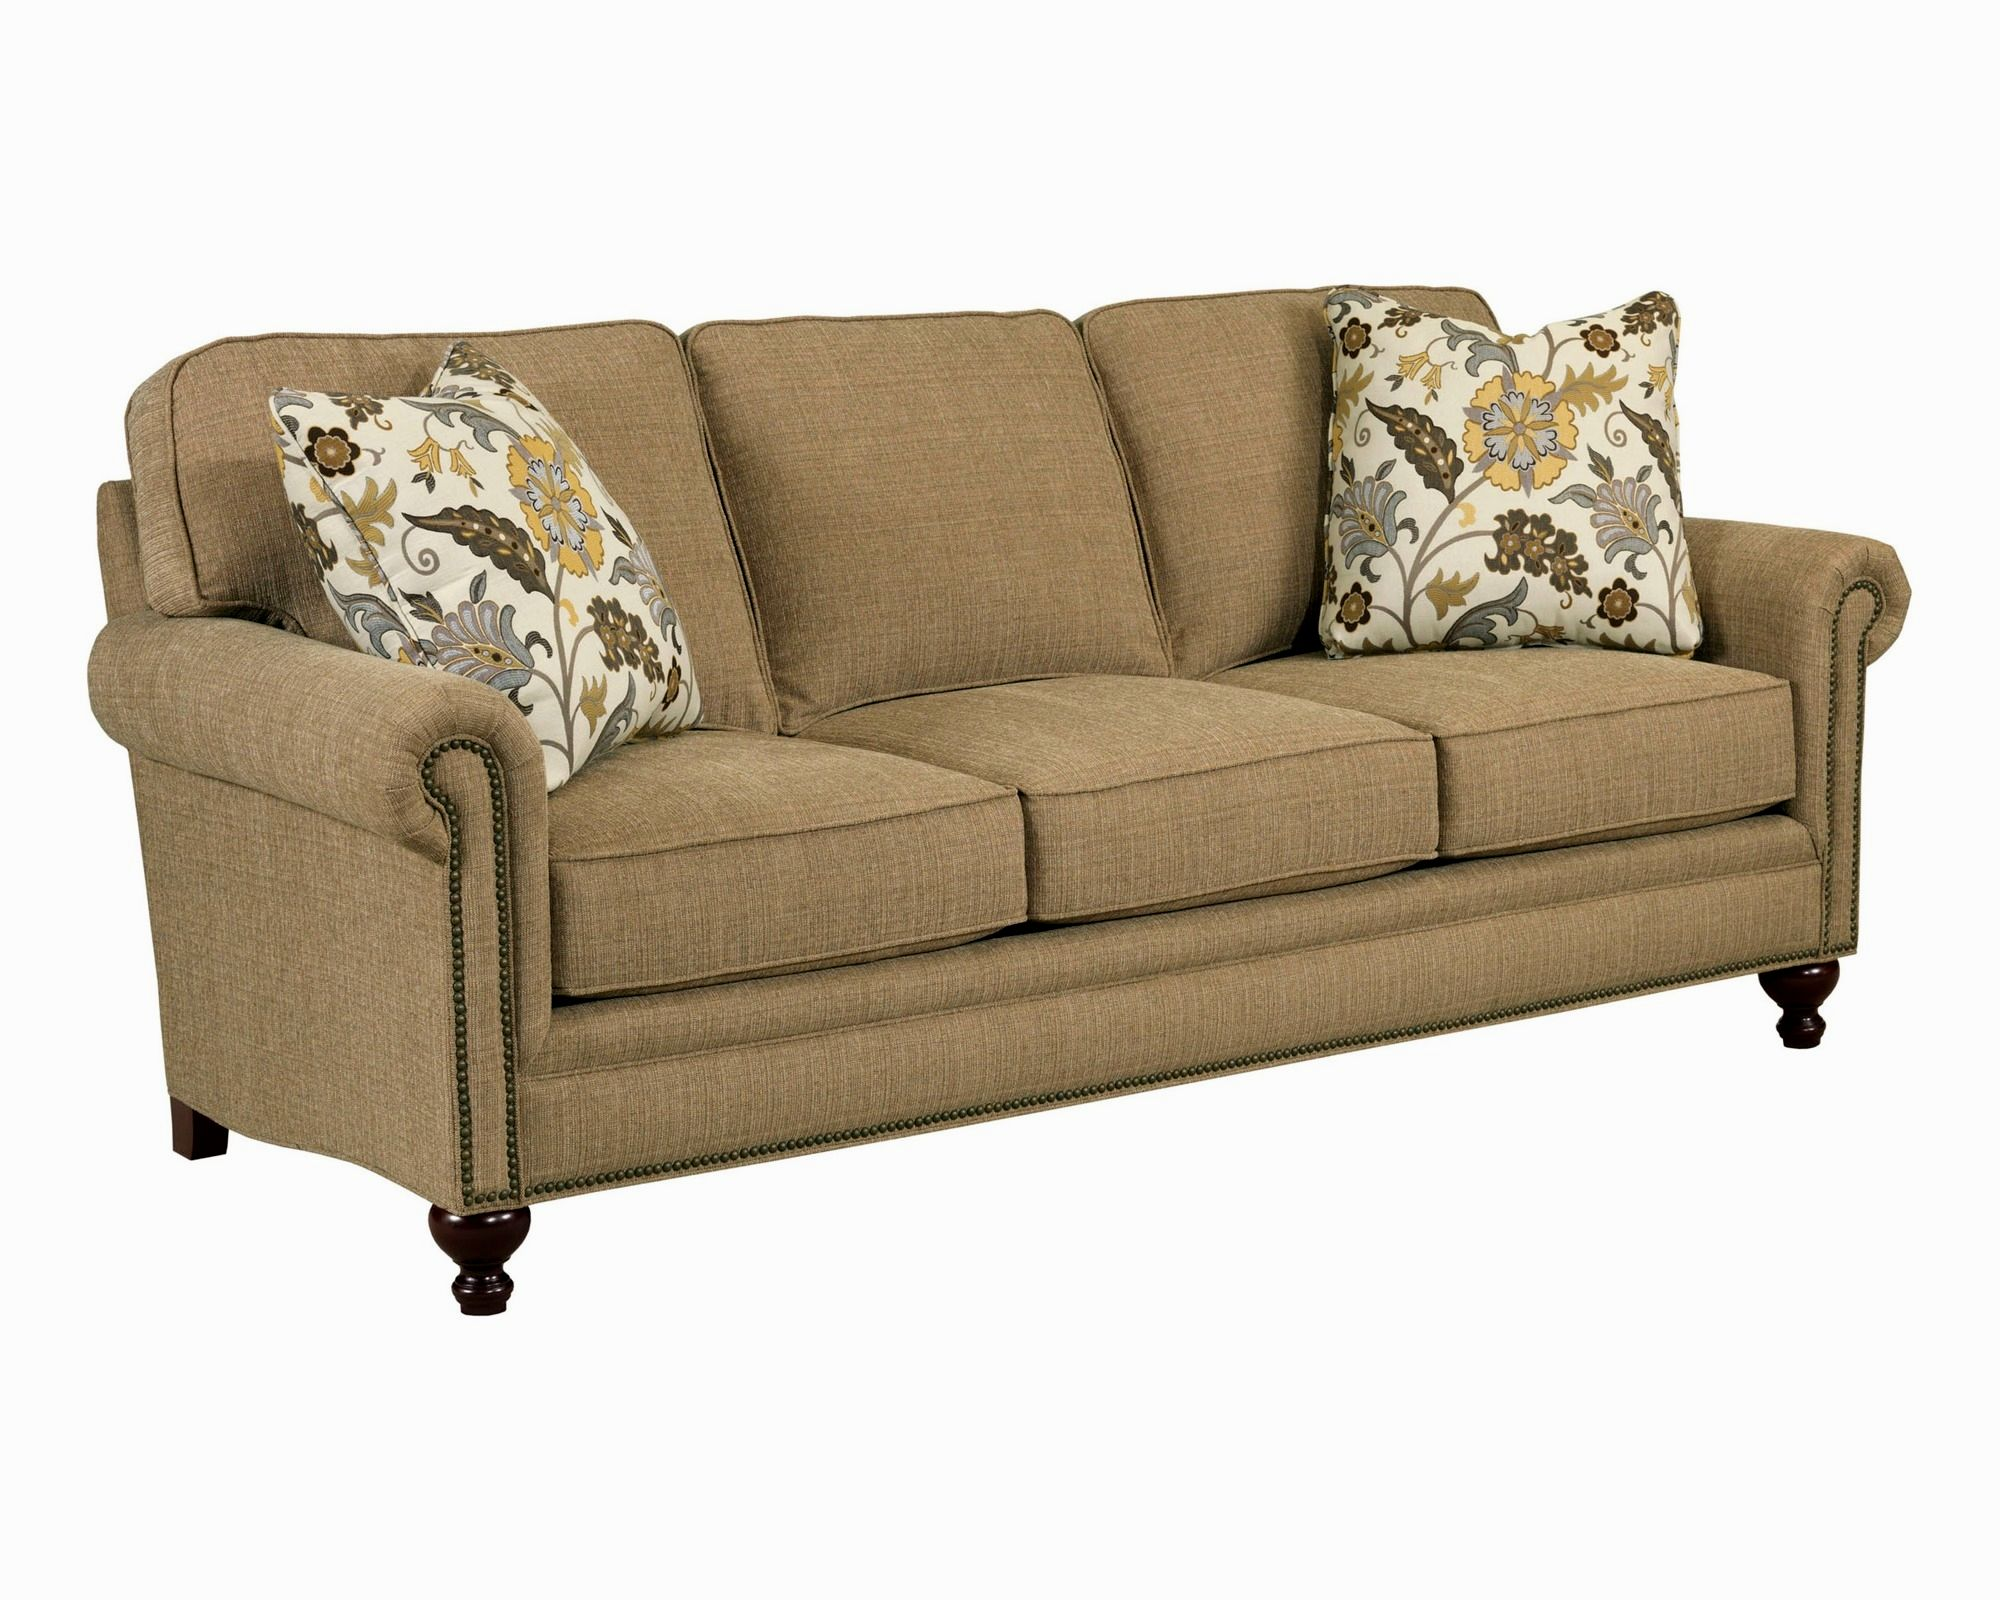 fresh beige sectional sofa gallery-Awesome Beige Sectional sofa Wallpaper